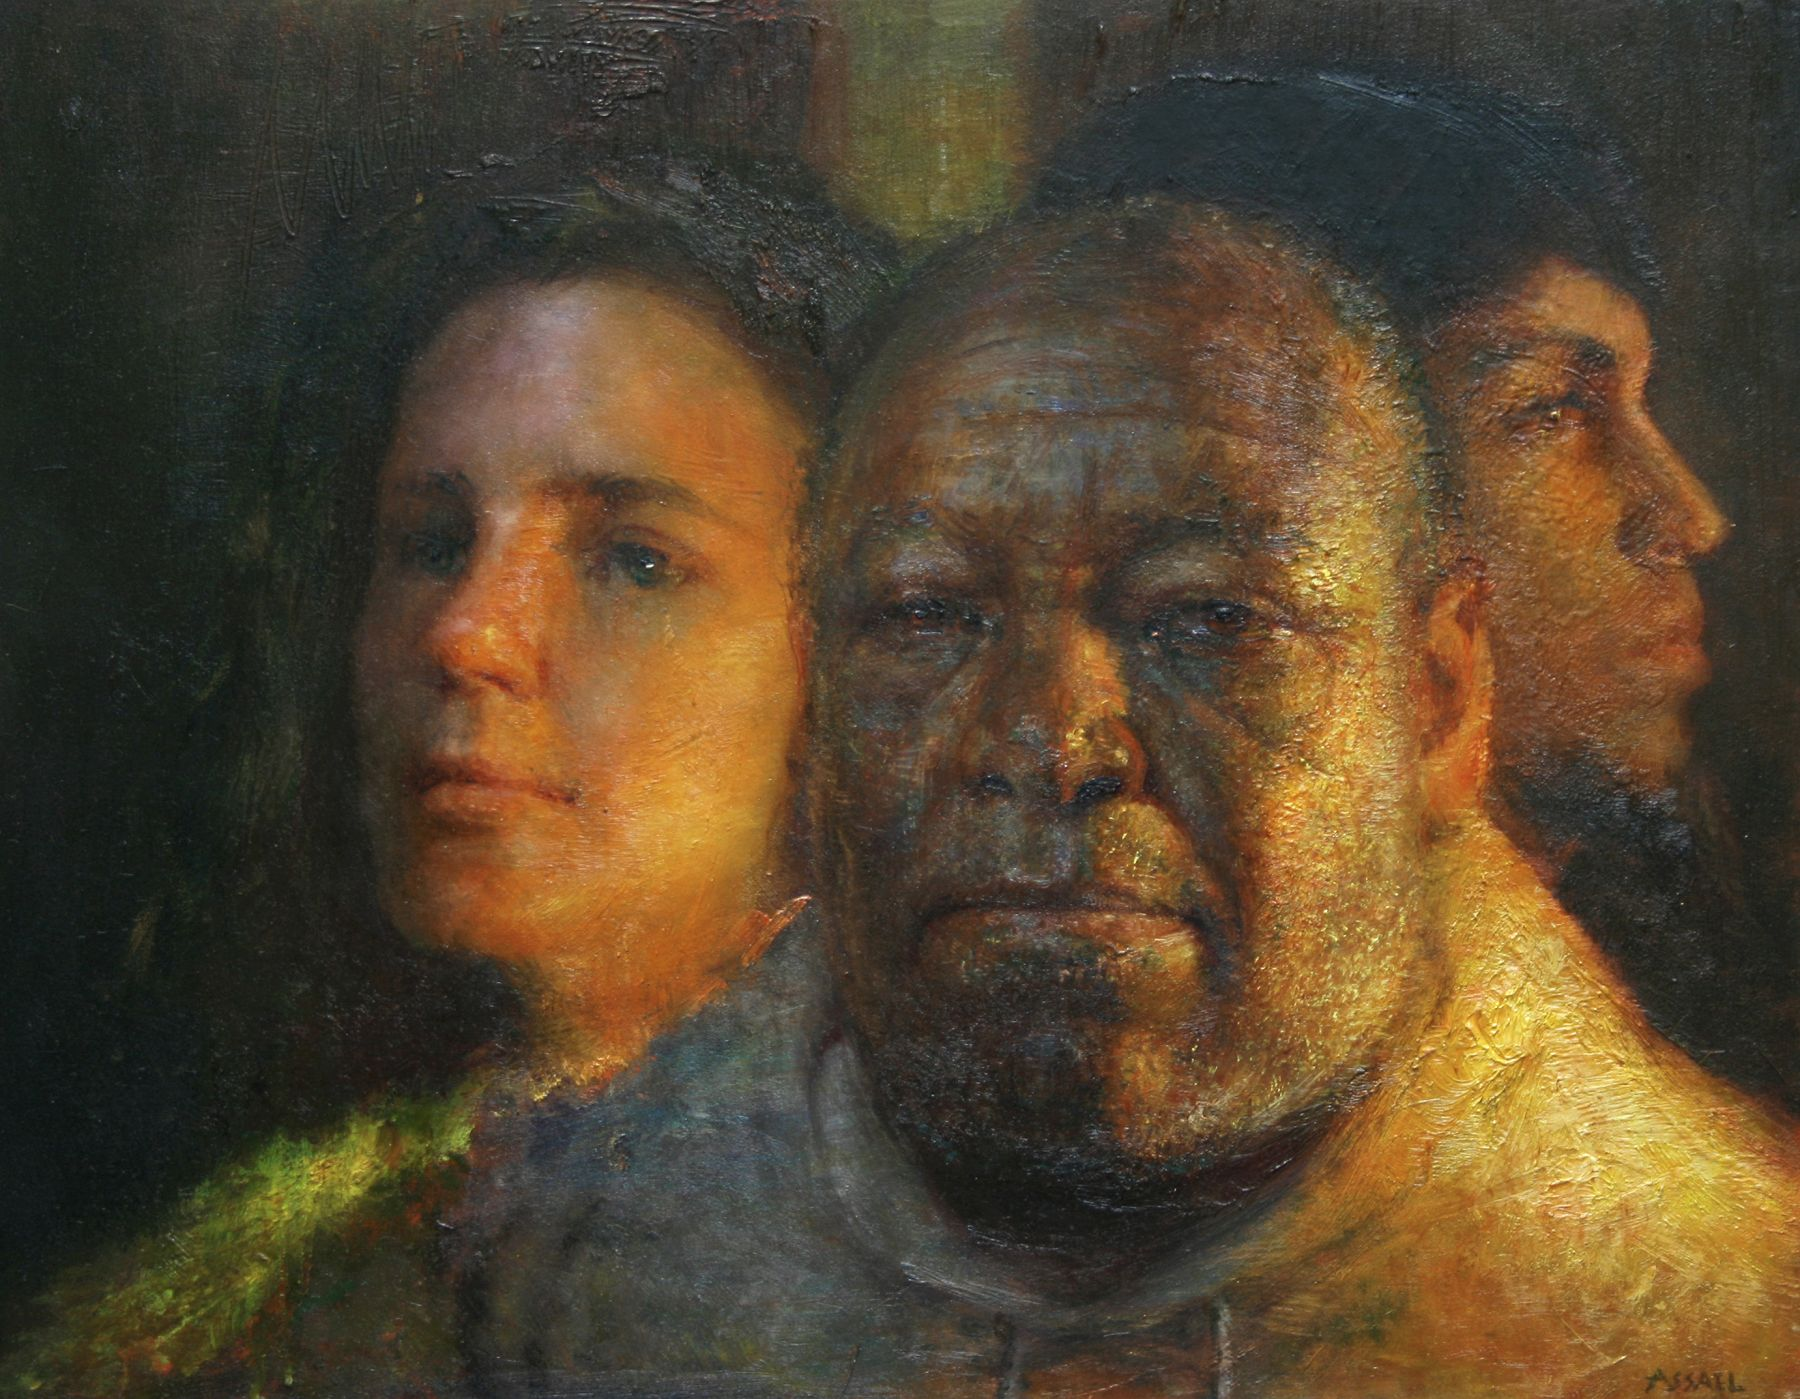 Steven Assael, Otis, Martha and Ben, 2008, oil on panel, 14 x 18 inches